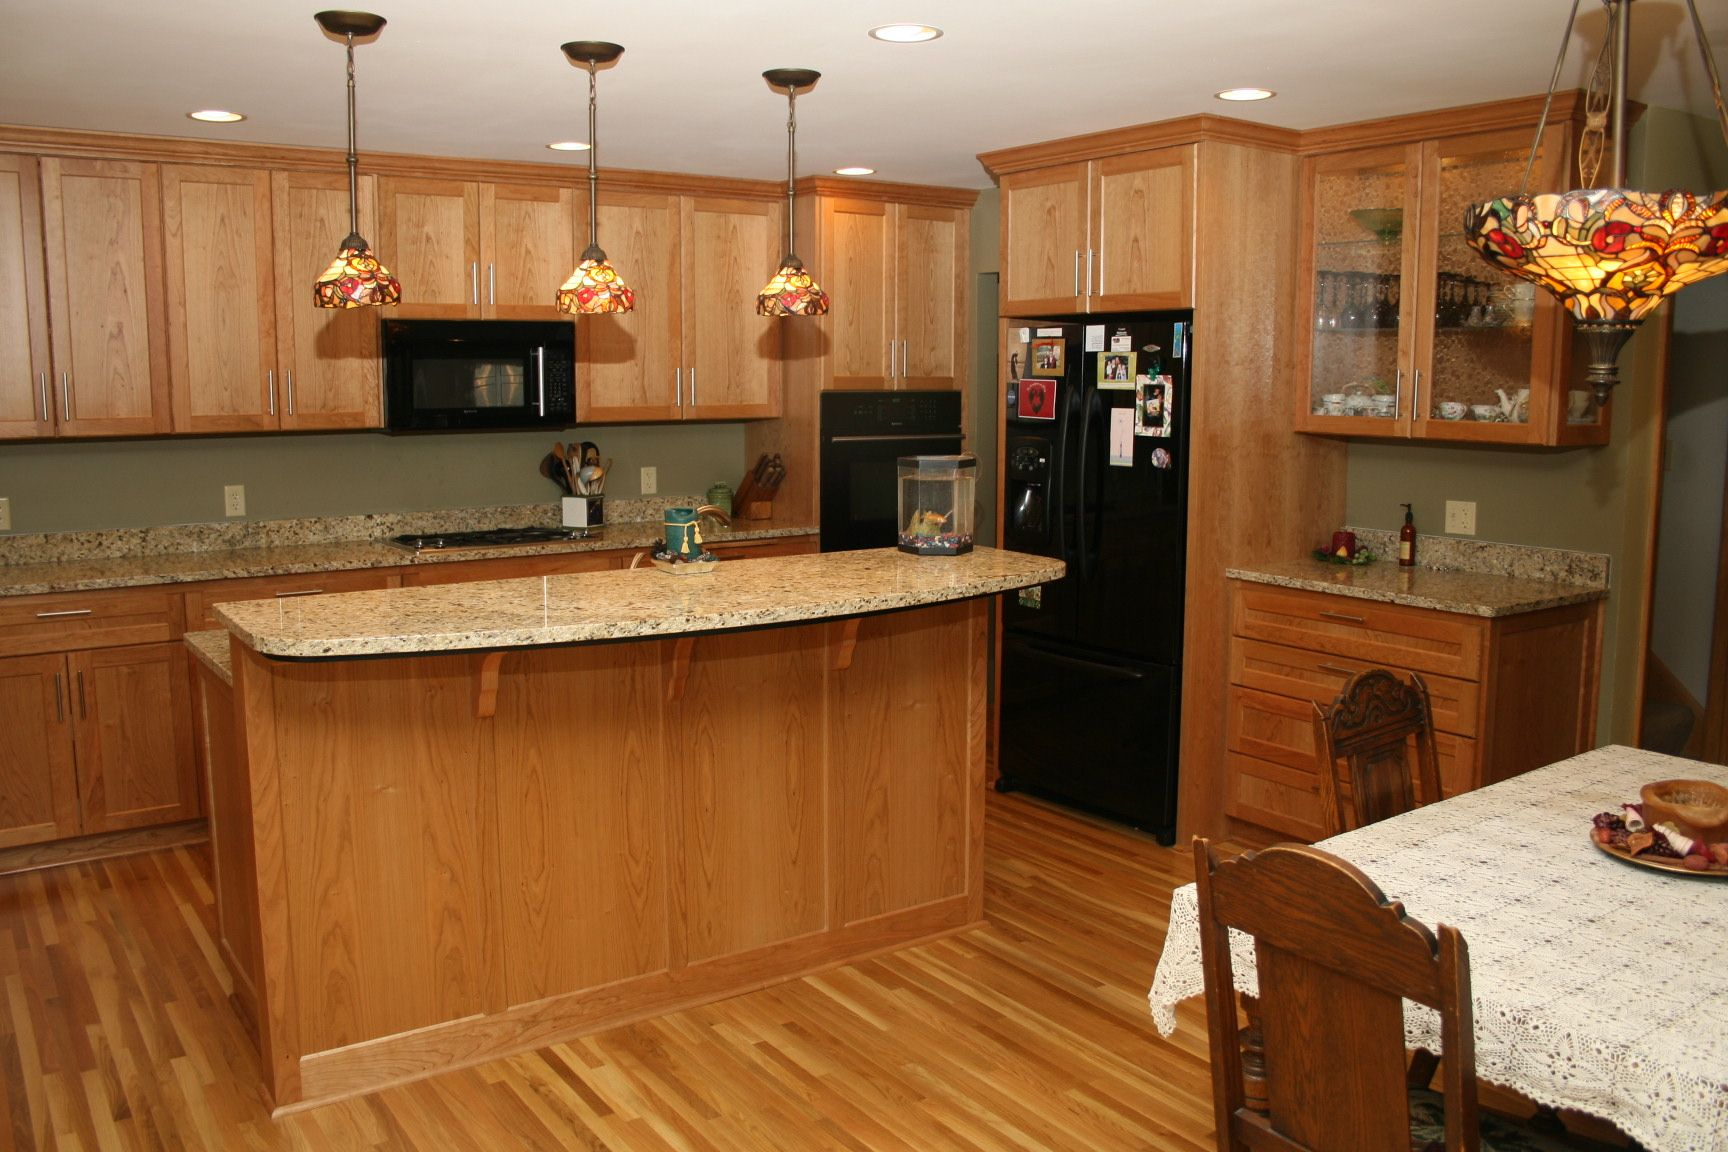 Design In Wood What To Do With Oak Cabinets: Oak Kitchen Cabinets Granite Countertop